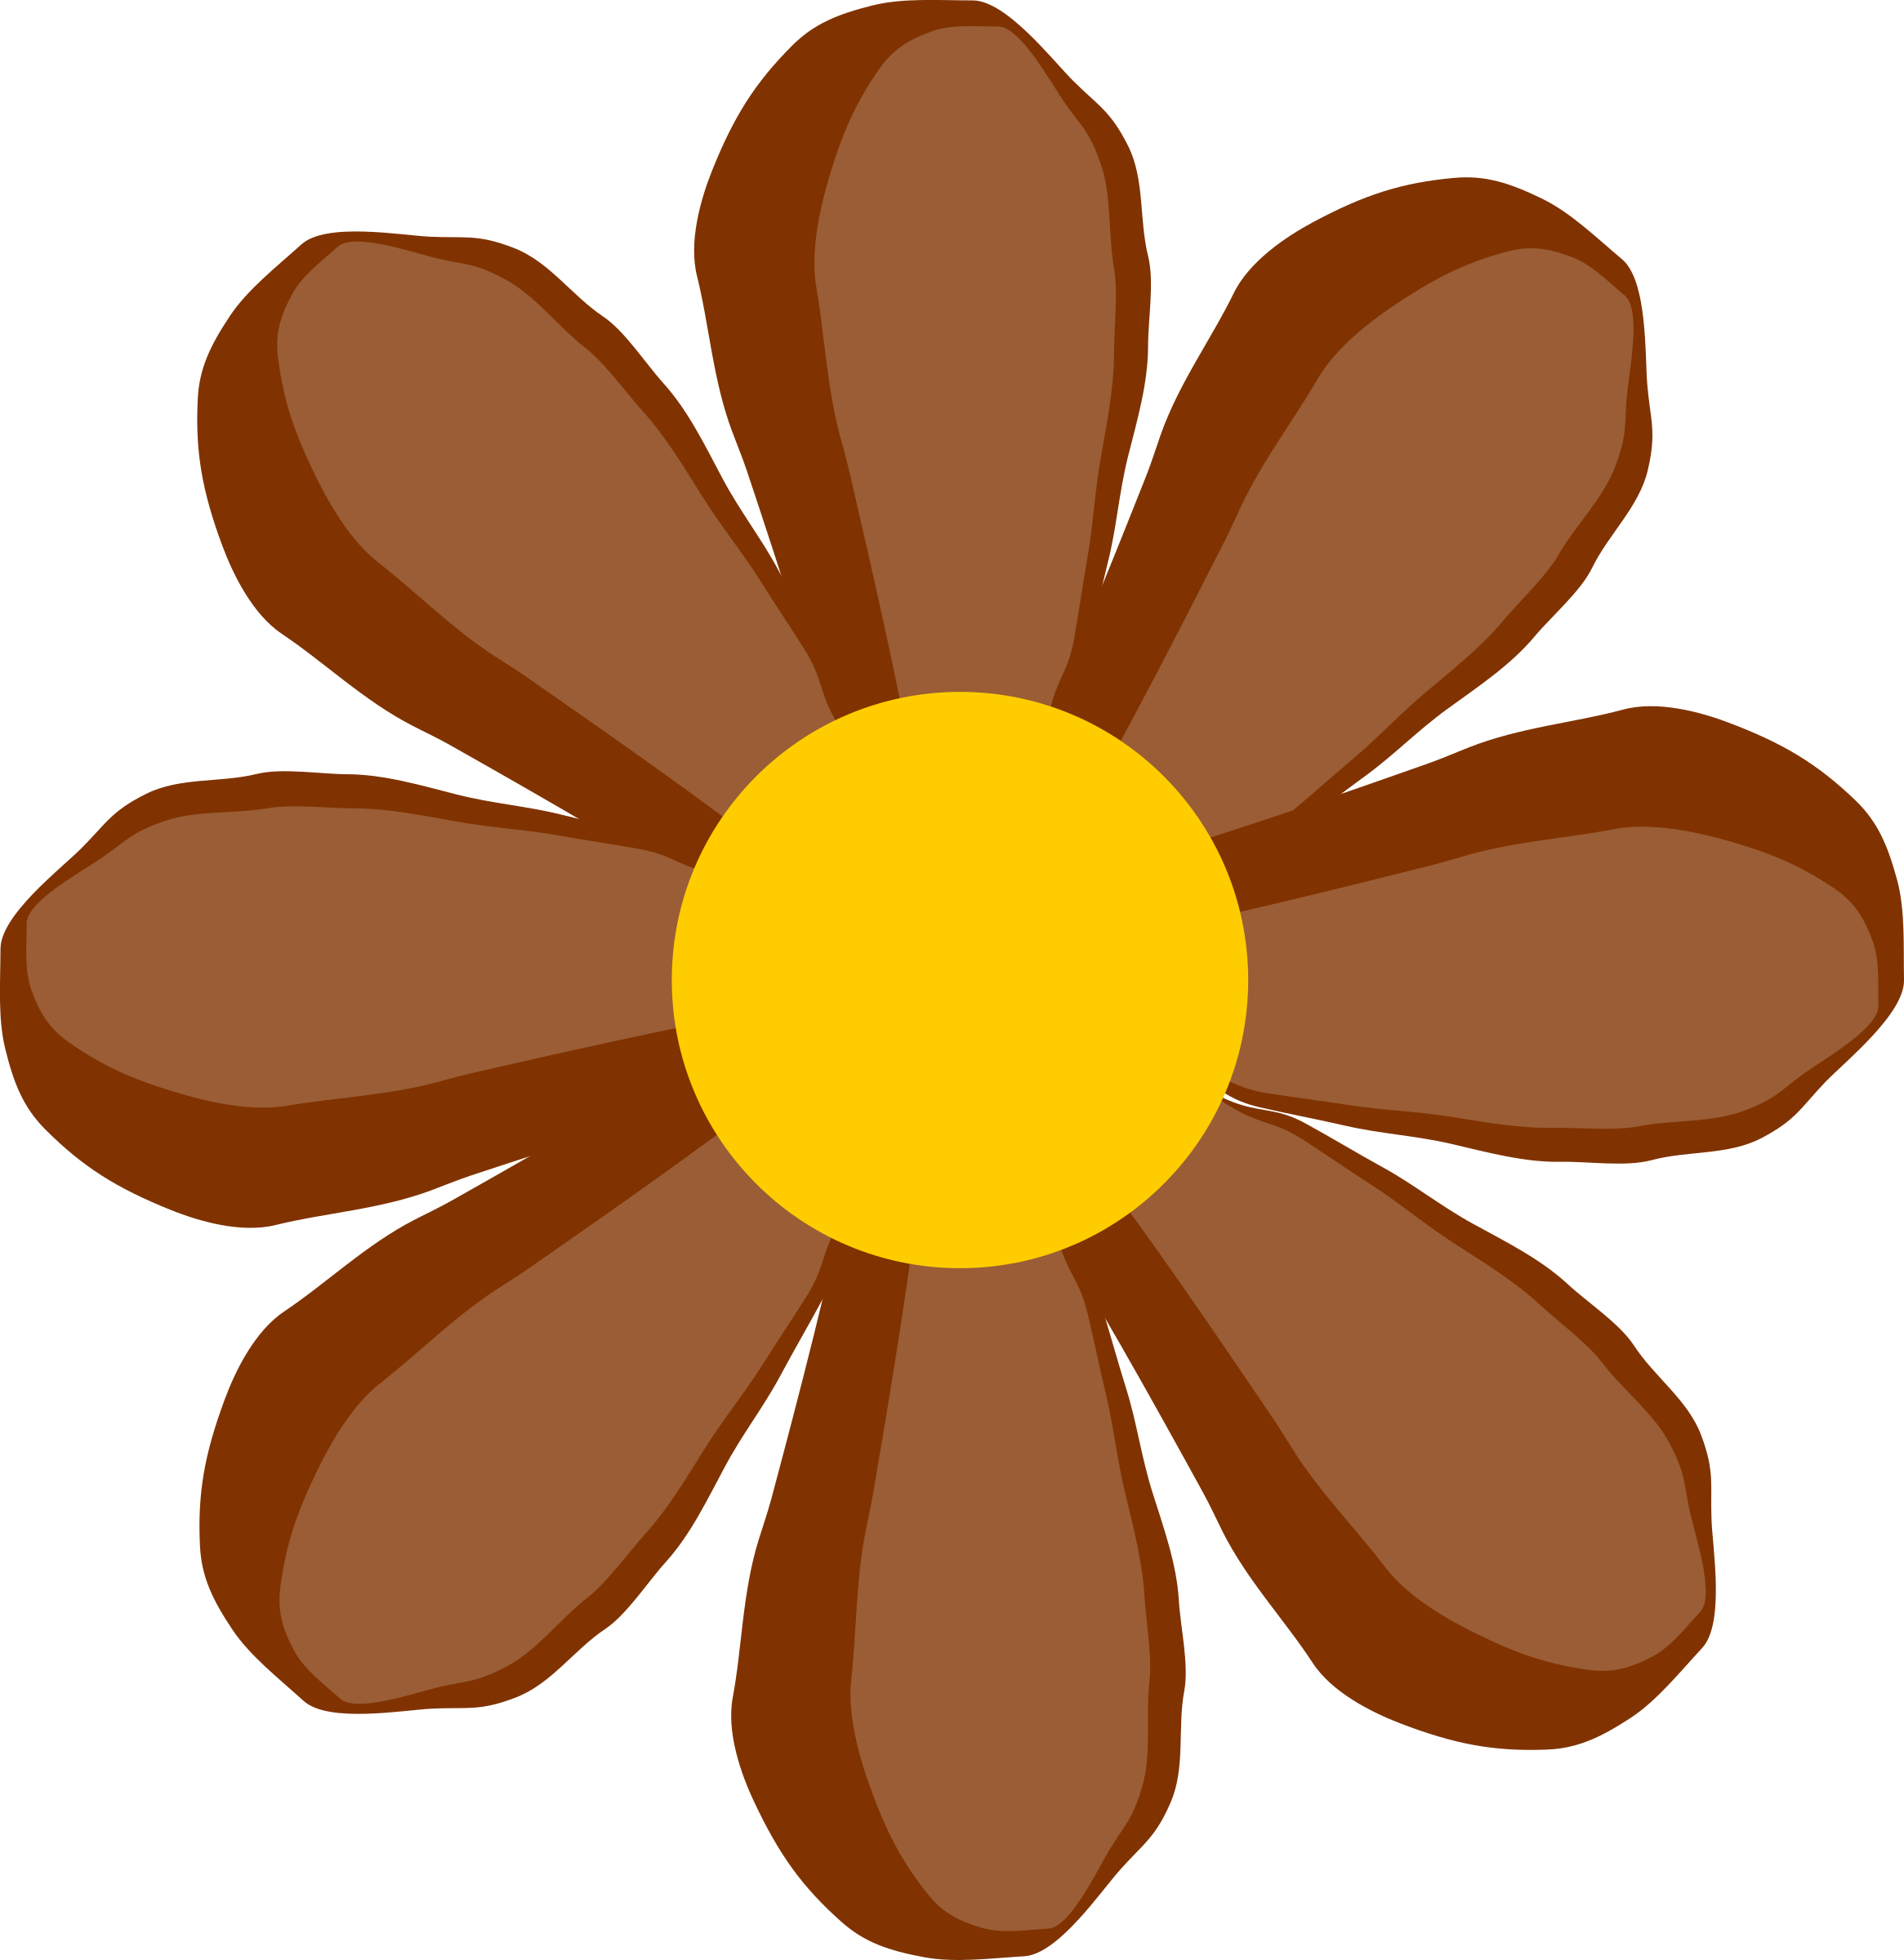 brown flower by Odysseus